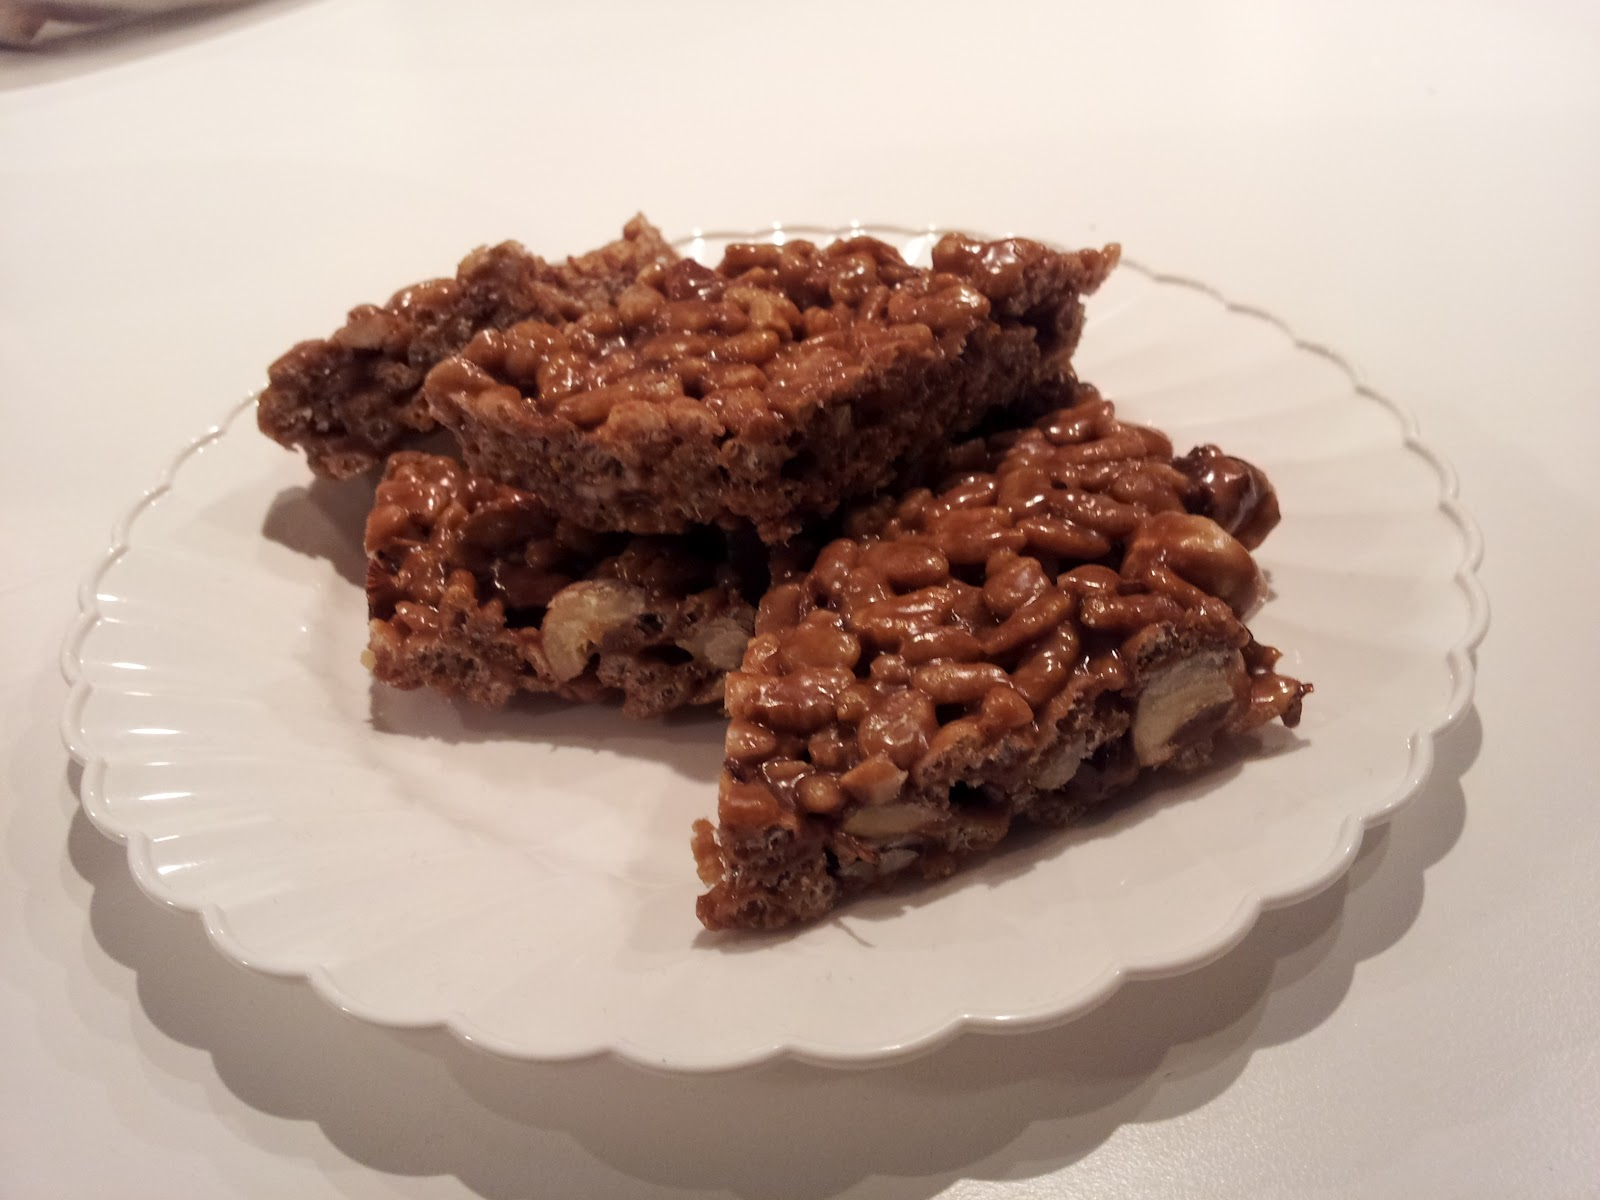 No Gluten Required: nutella rice krispie treats